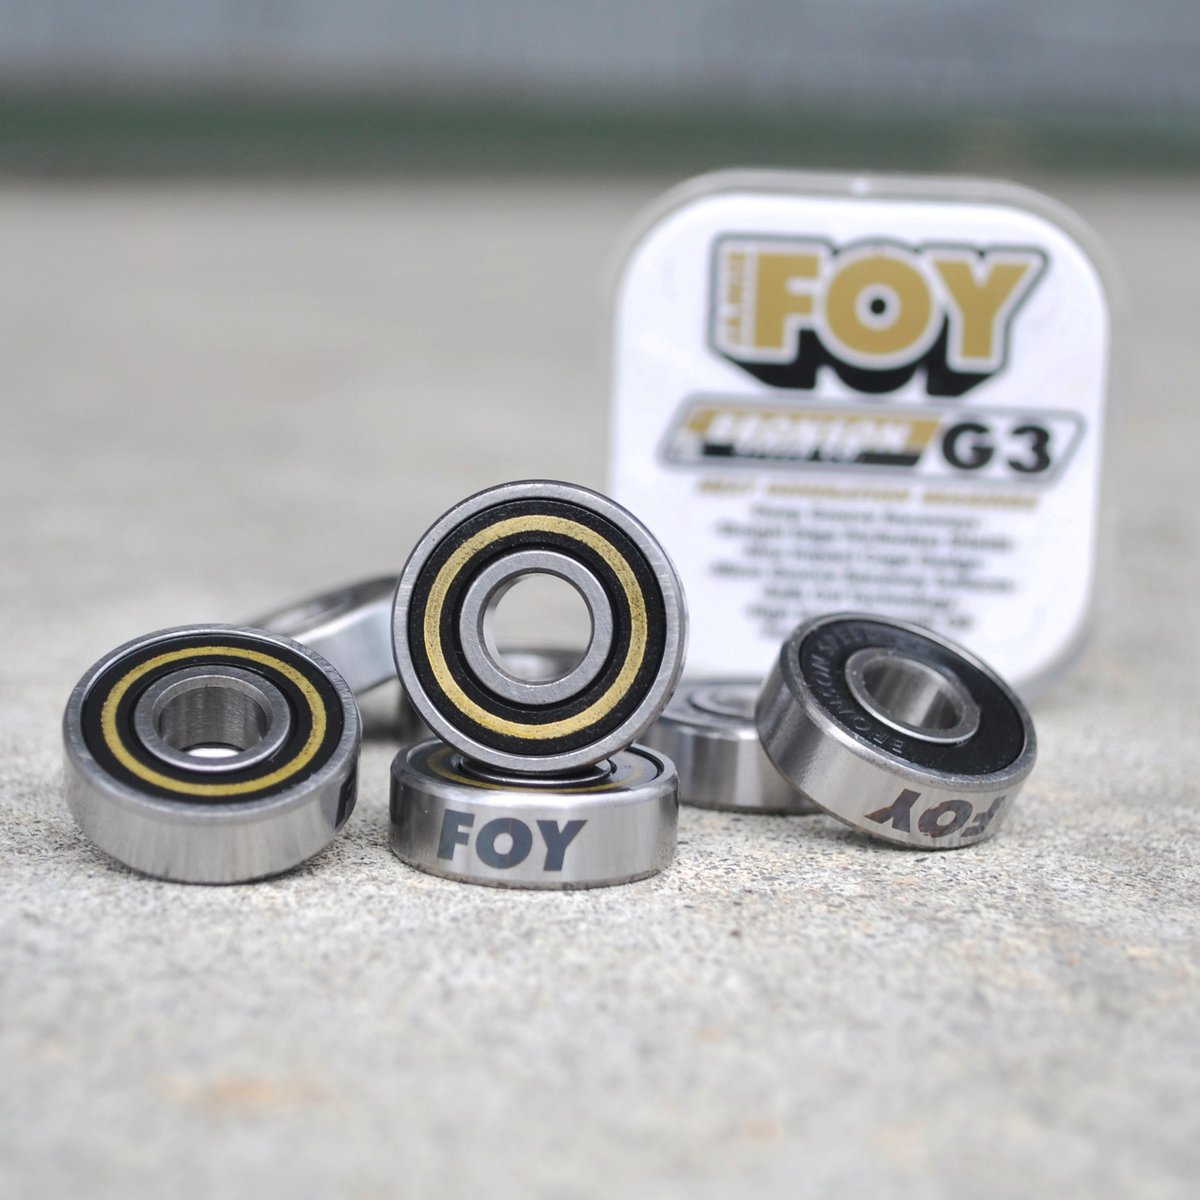 G3 Pro Bearings  Ride the Fastest Bearings with Jamie Foy and Milton Martinez G3 Pro Colorway Bearings! Hit up your local skateshop or the LINK BELOW!   Check them out http://bit.ly/38ER0rGpic.twitter.com/vGfNBX3JOp